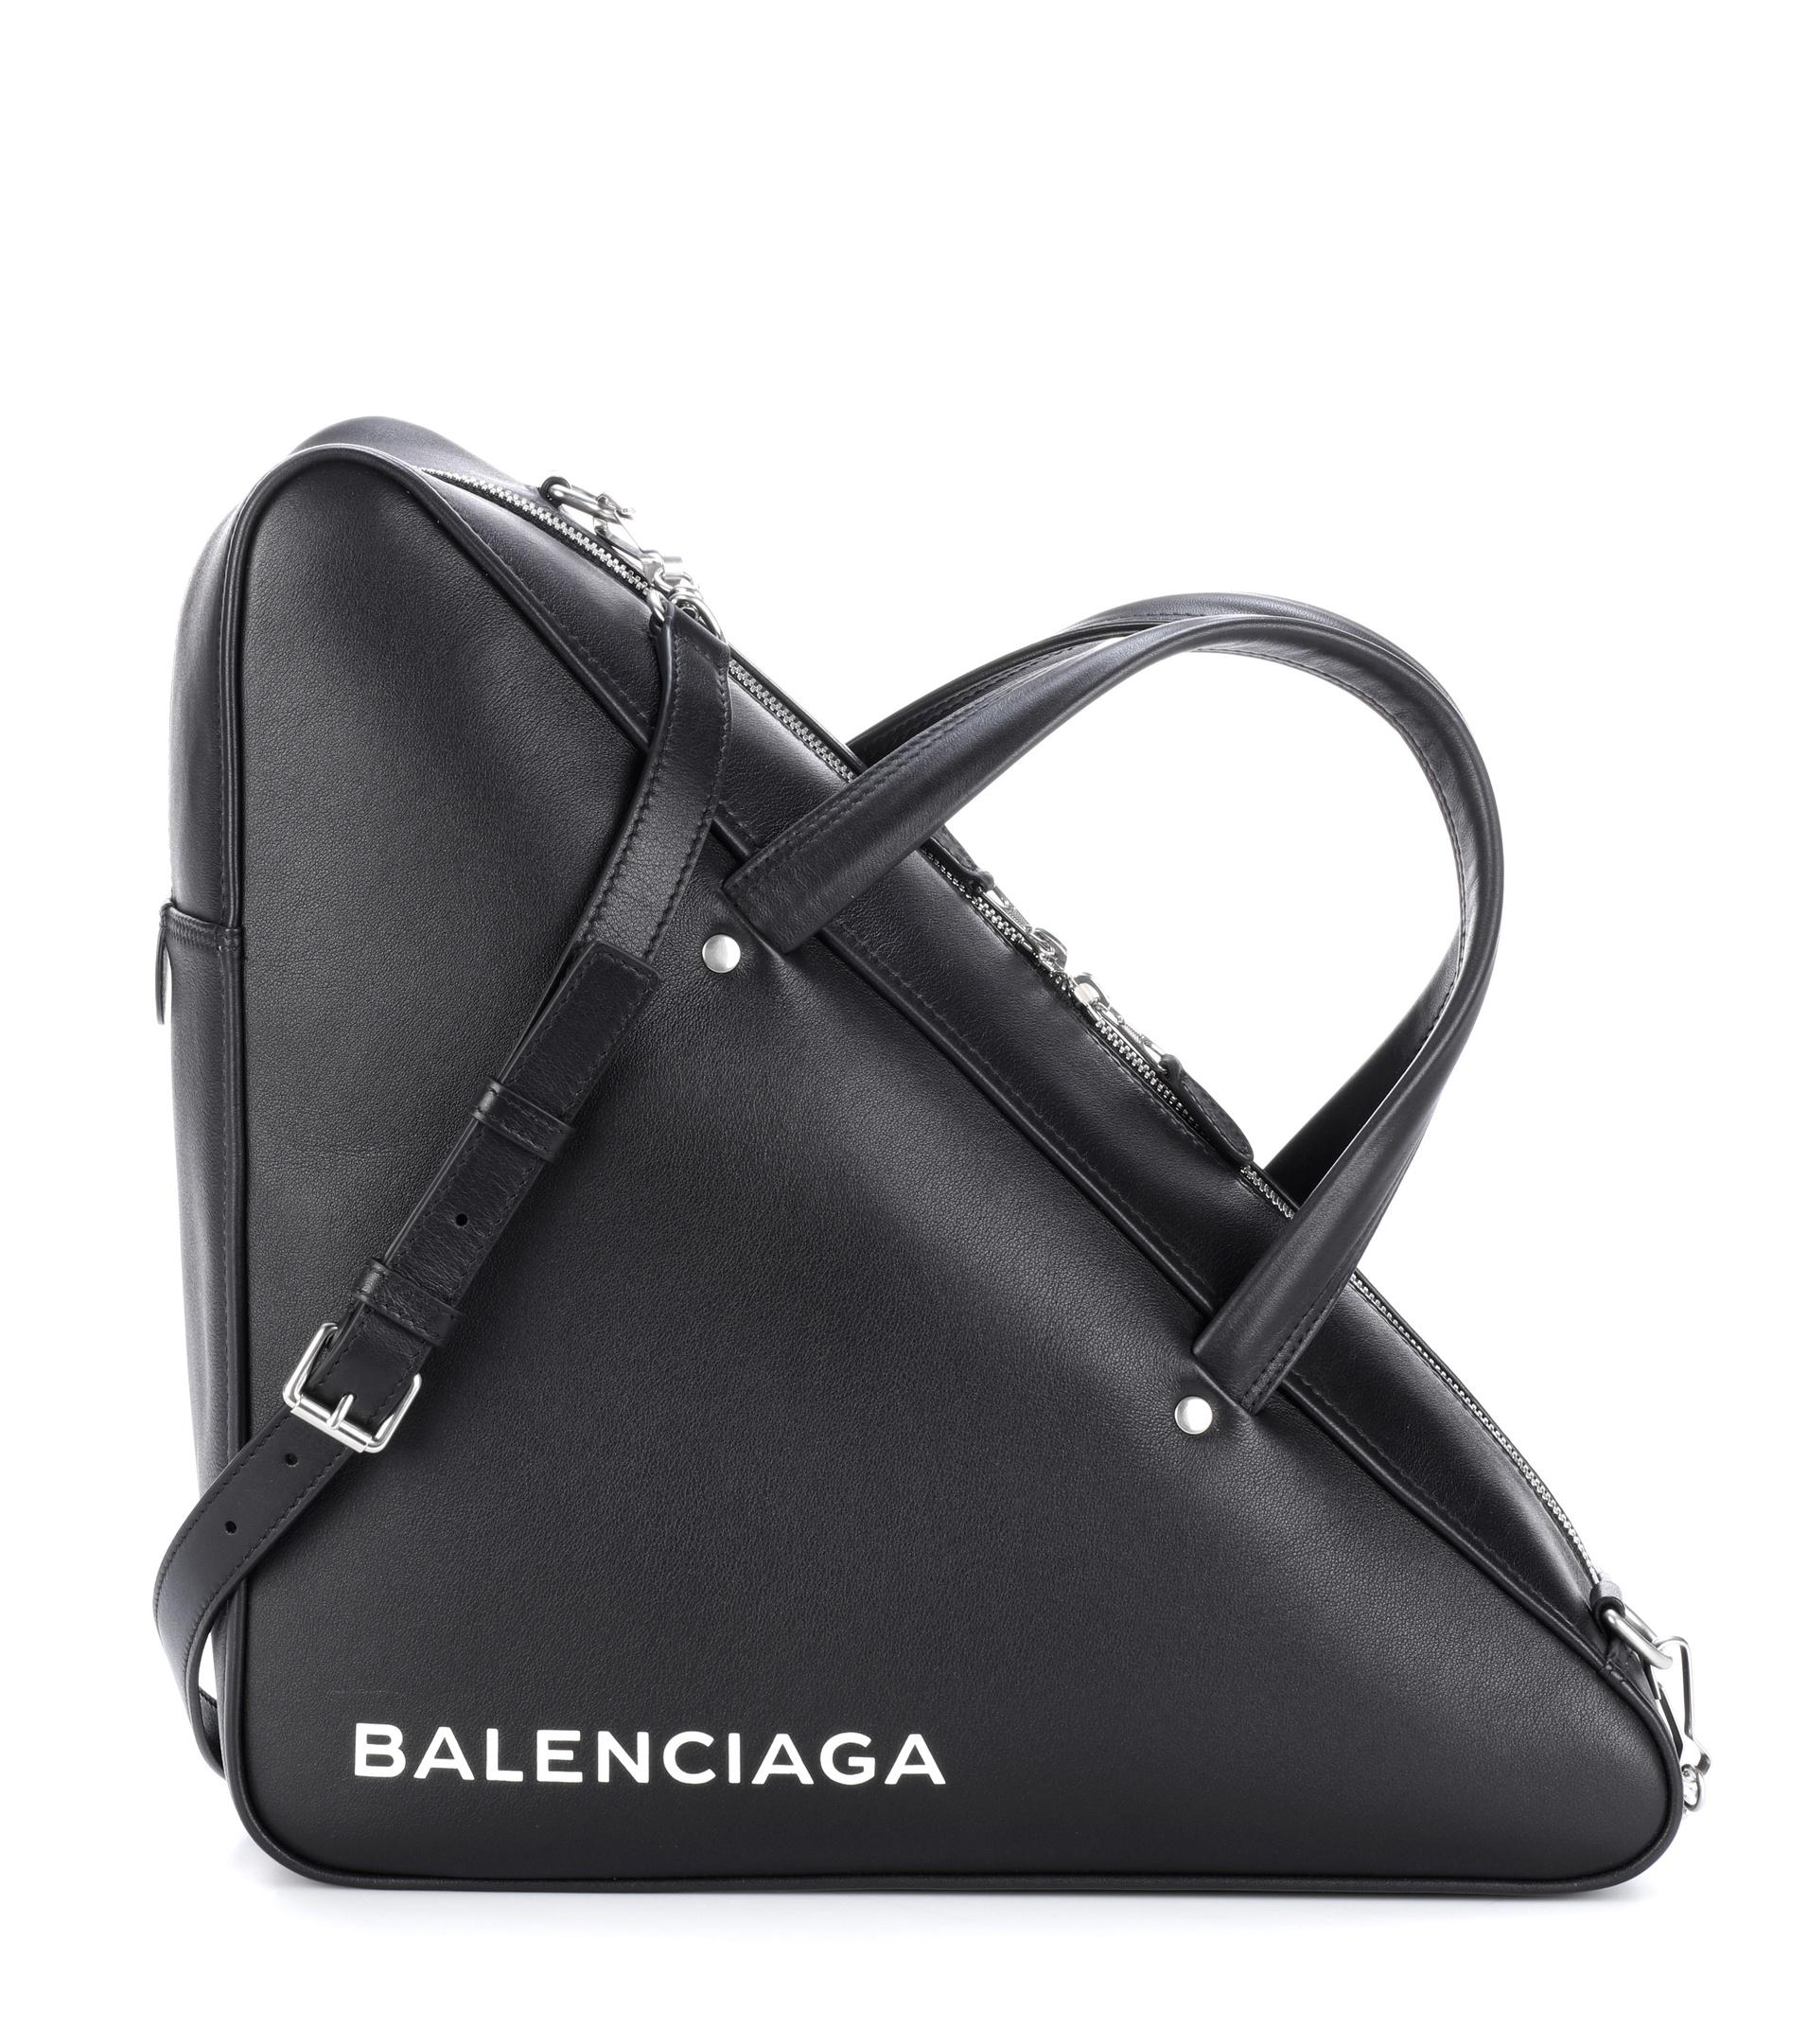 Triangle Square S bag Balenciaga px7N0d